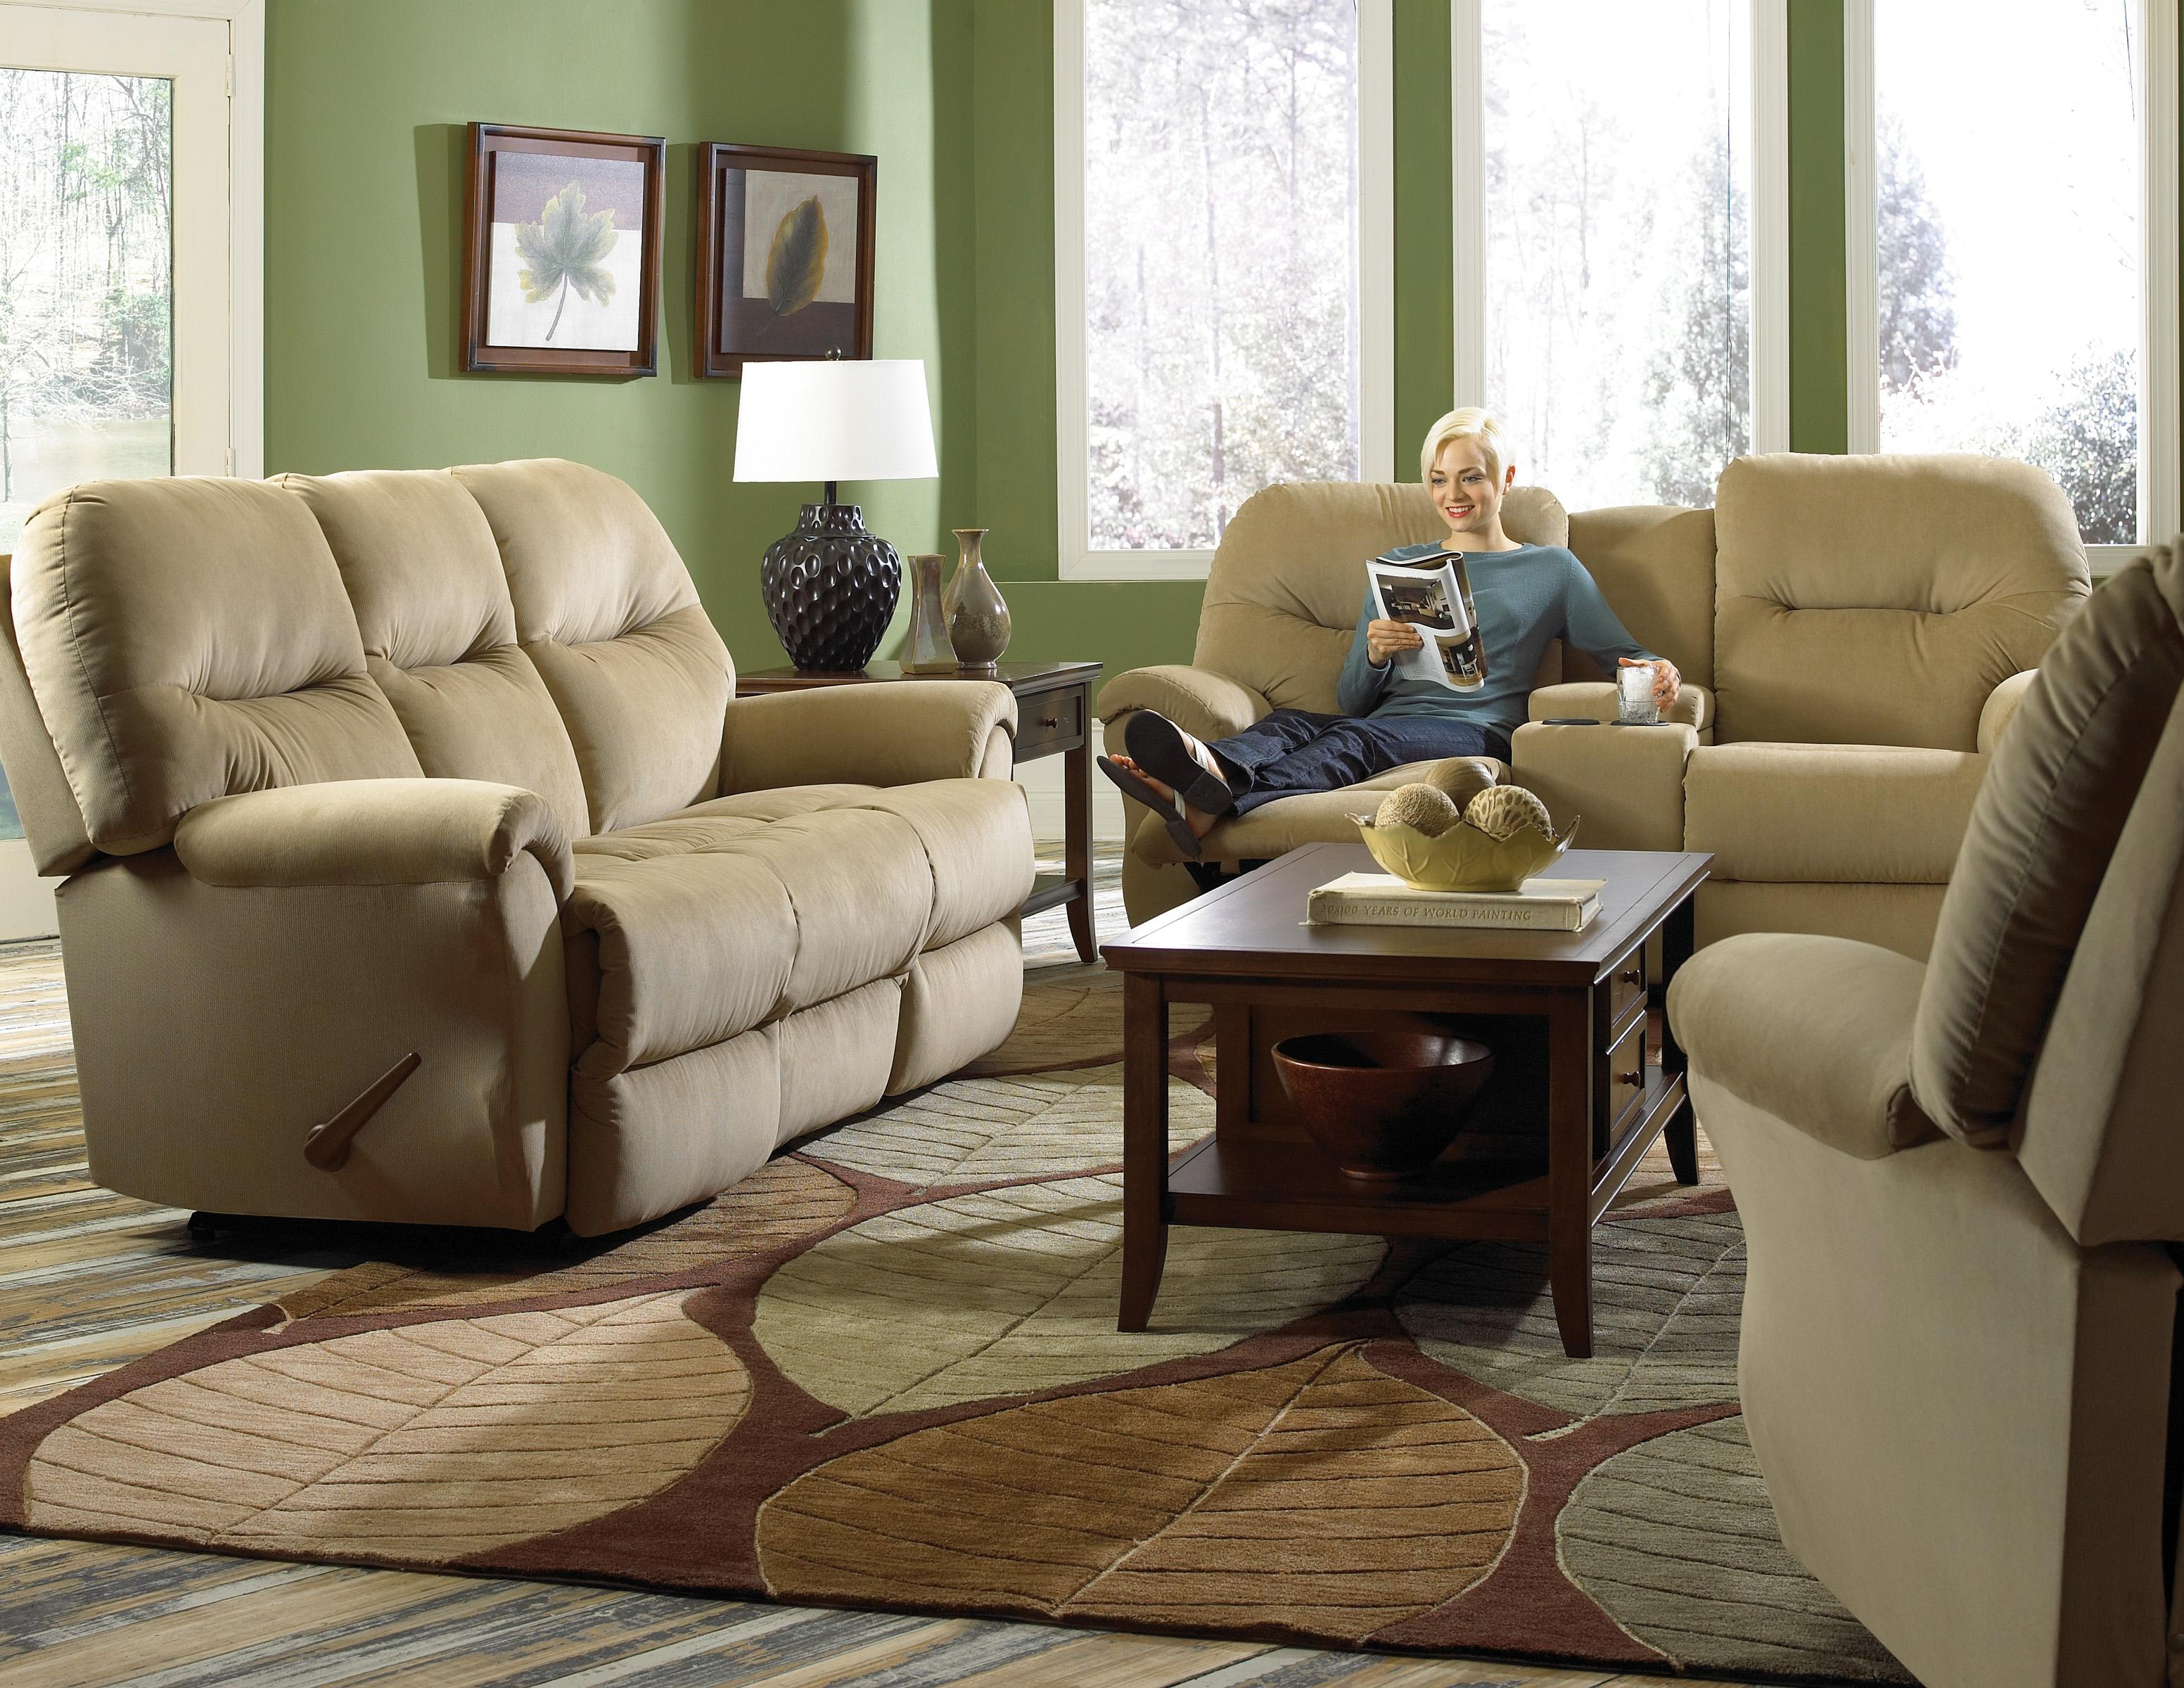 Bodie Rocking Reclining Loveseat With Storage Console By